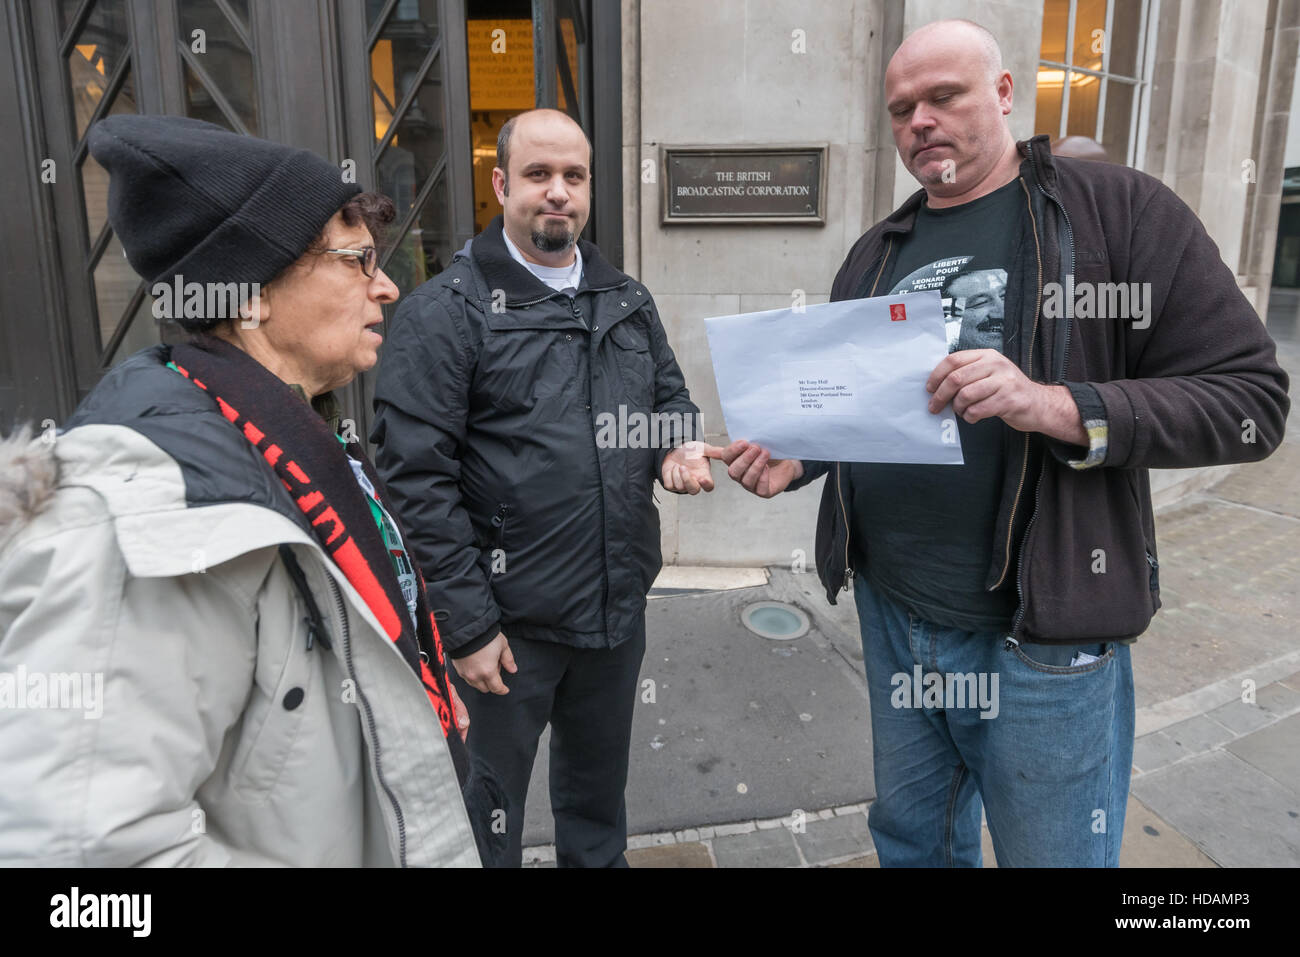 London, UK. 10th December 2016. The protesters hand in a letter to the Director General of  the BBC on UN Human - Stock Image